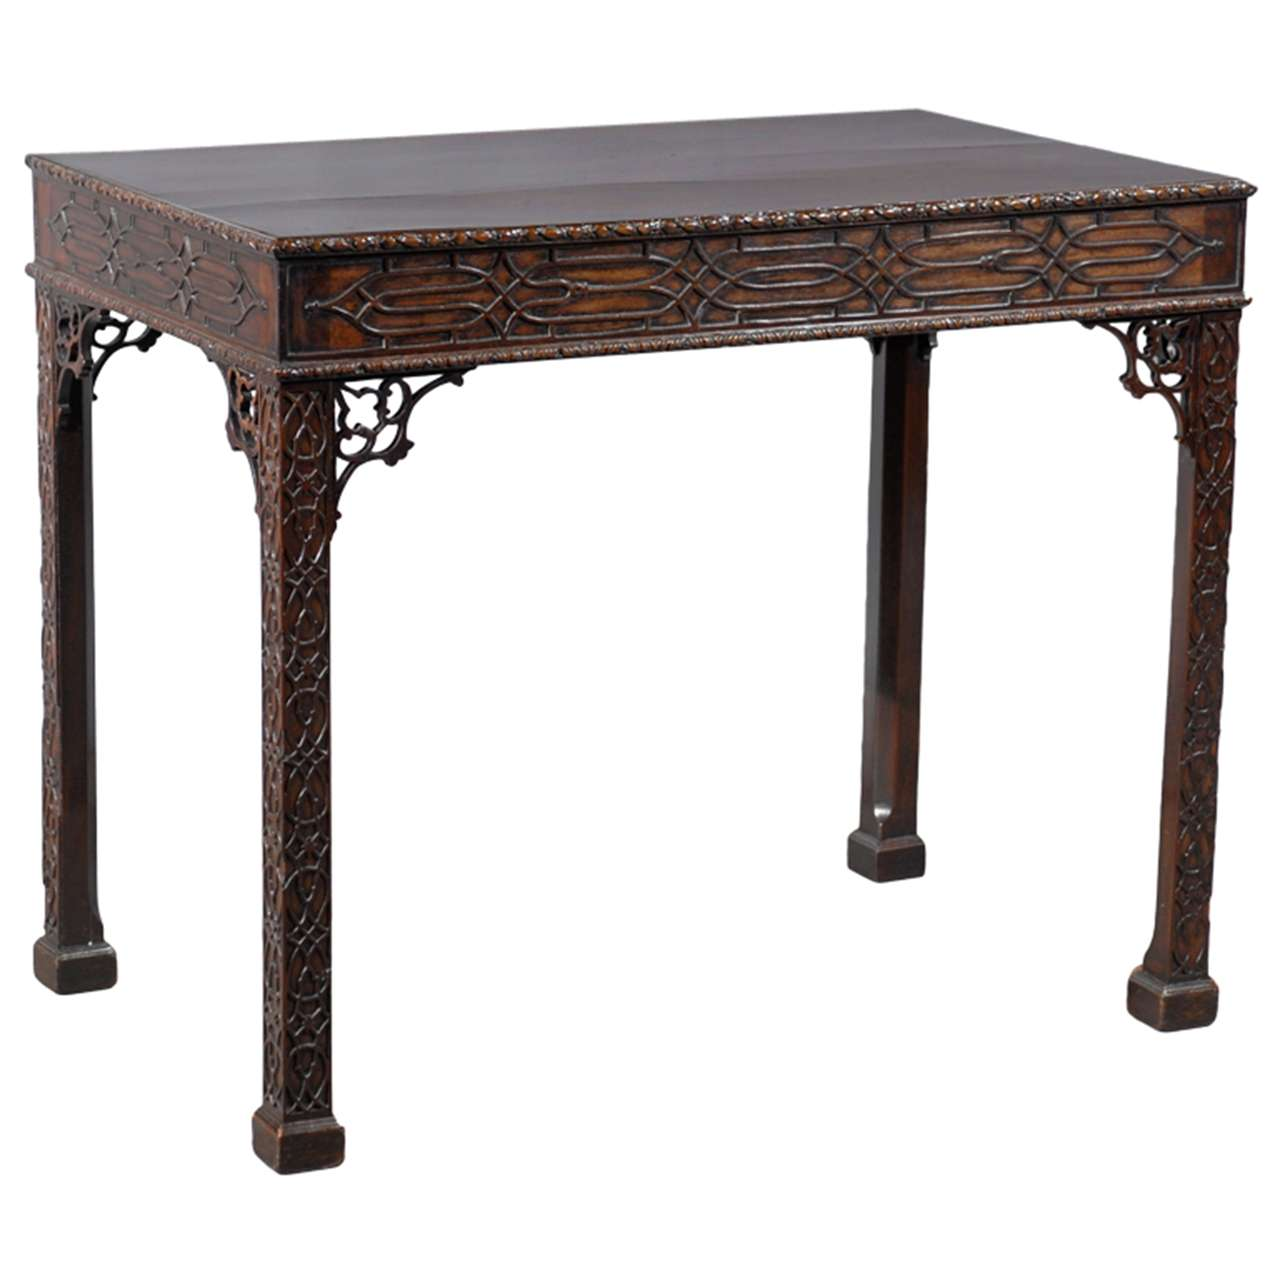 19th century english chinese chippendale style tea table for England table